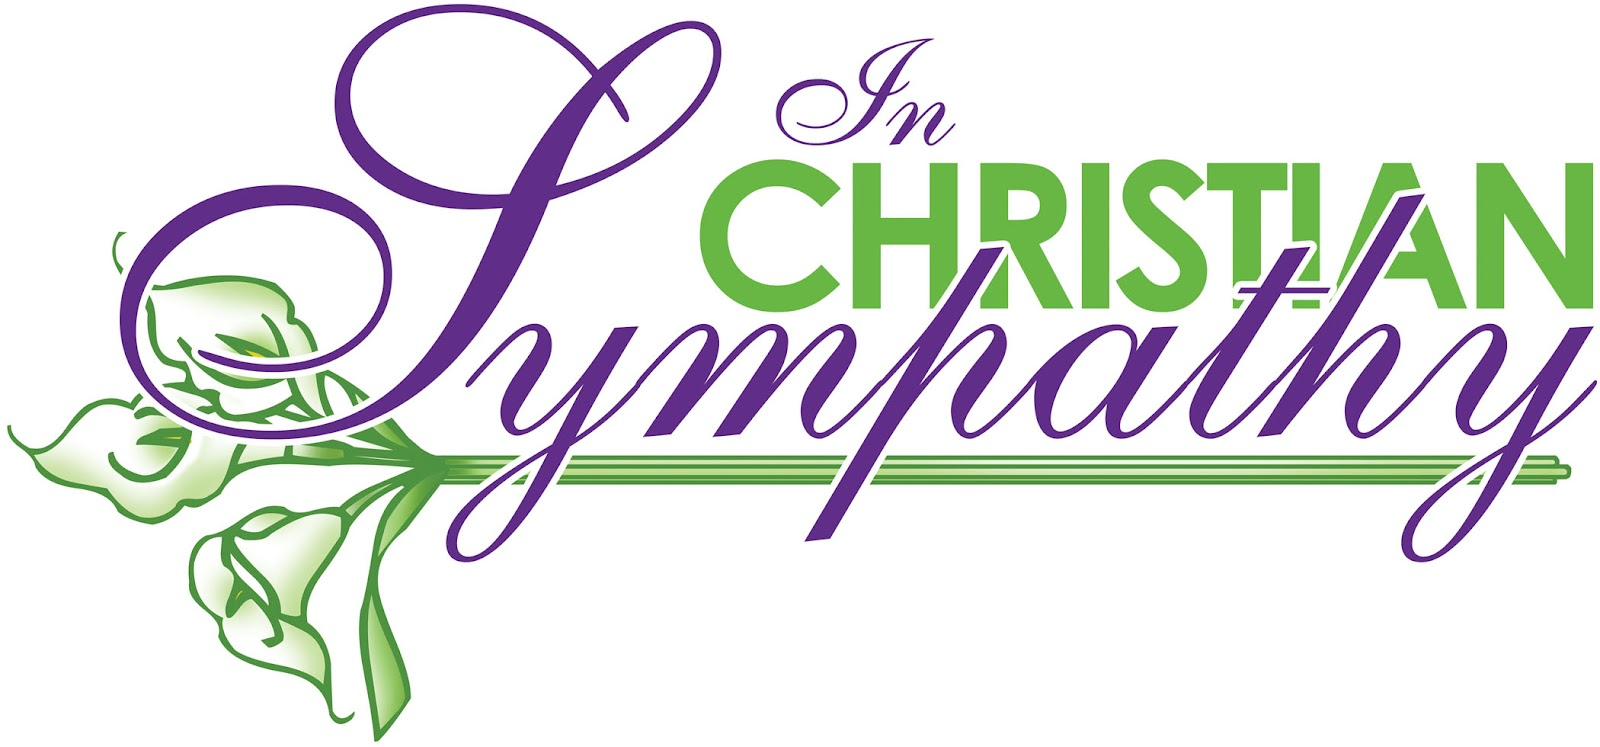 1600x747 Remarkable Sympathy Clip Art Christian Clipart Thank You Messages